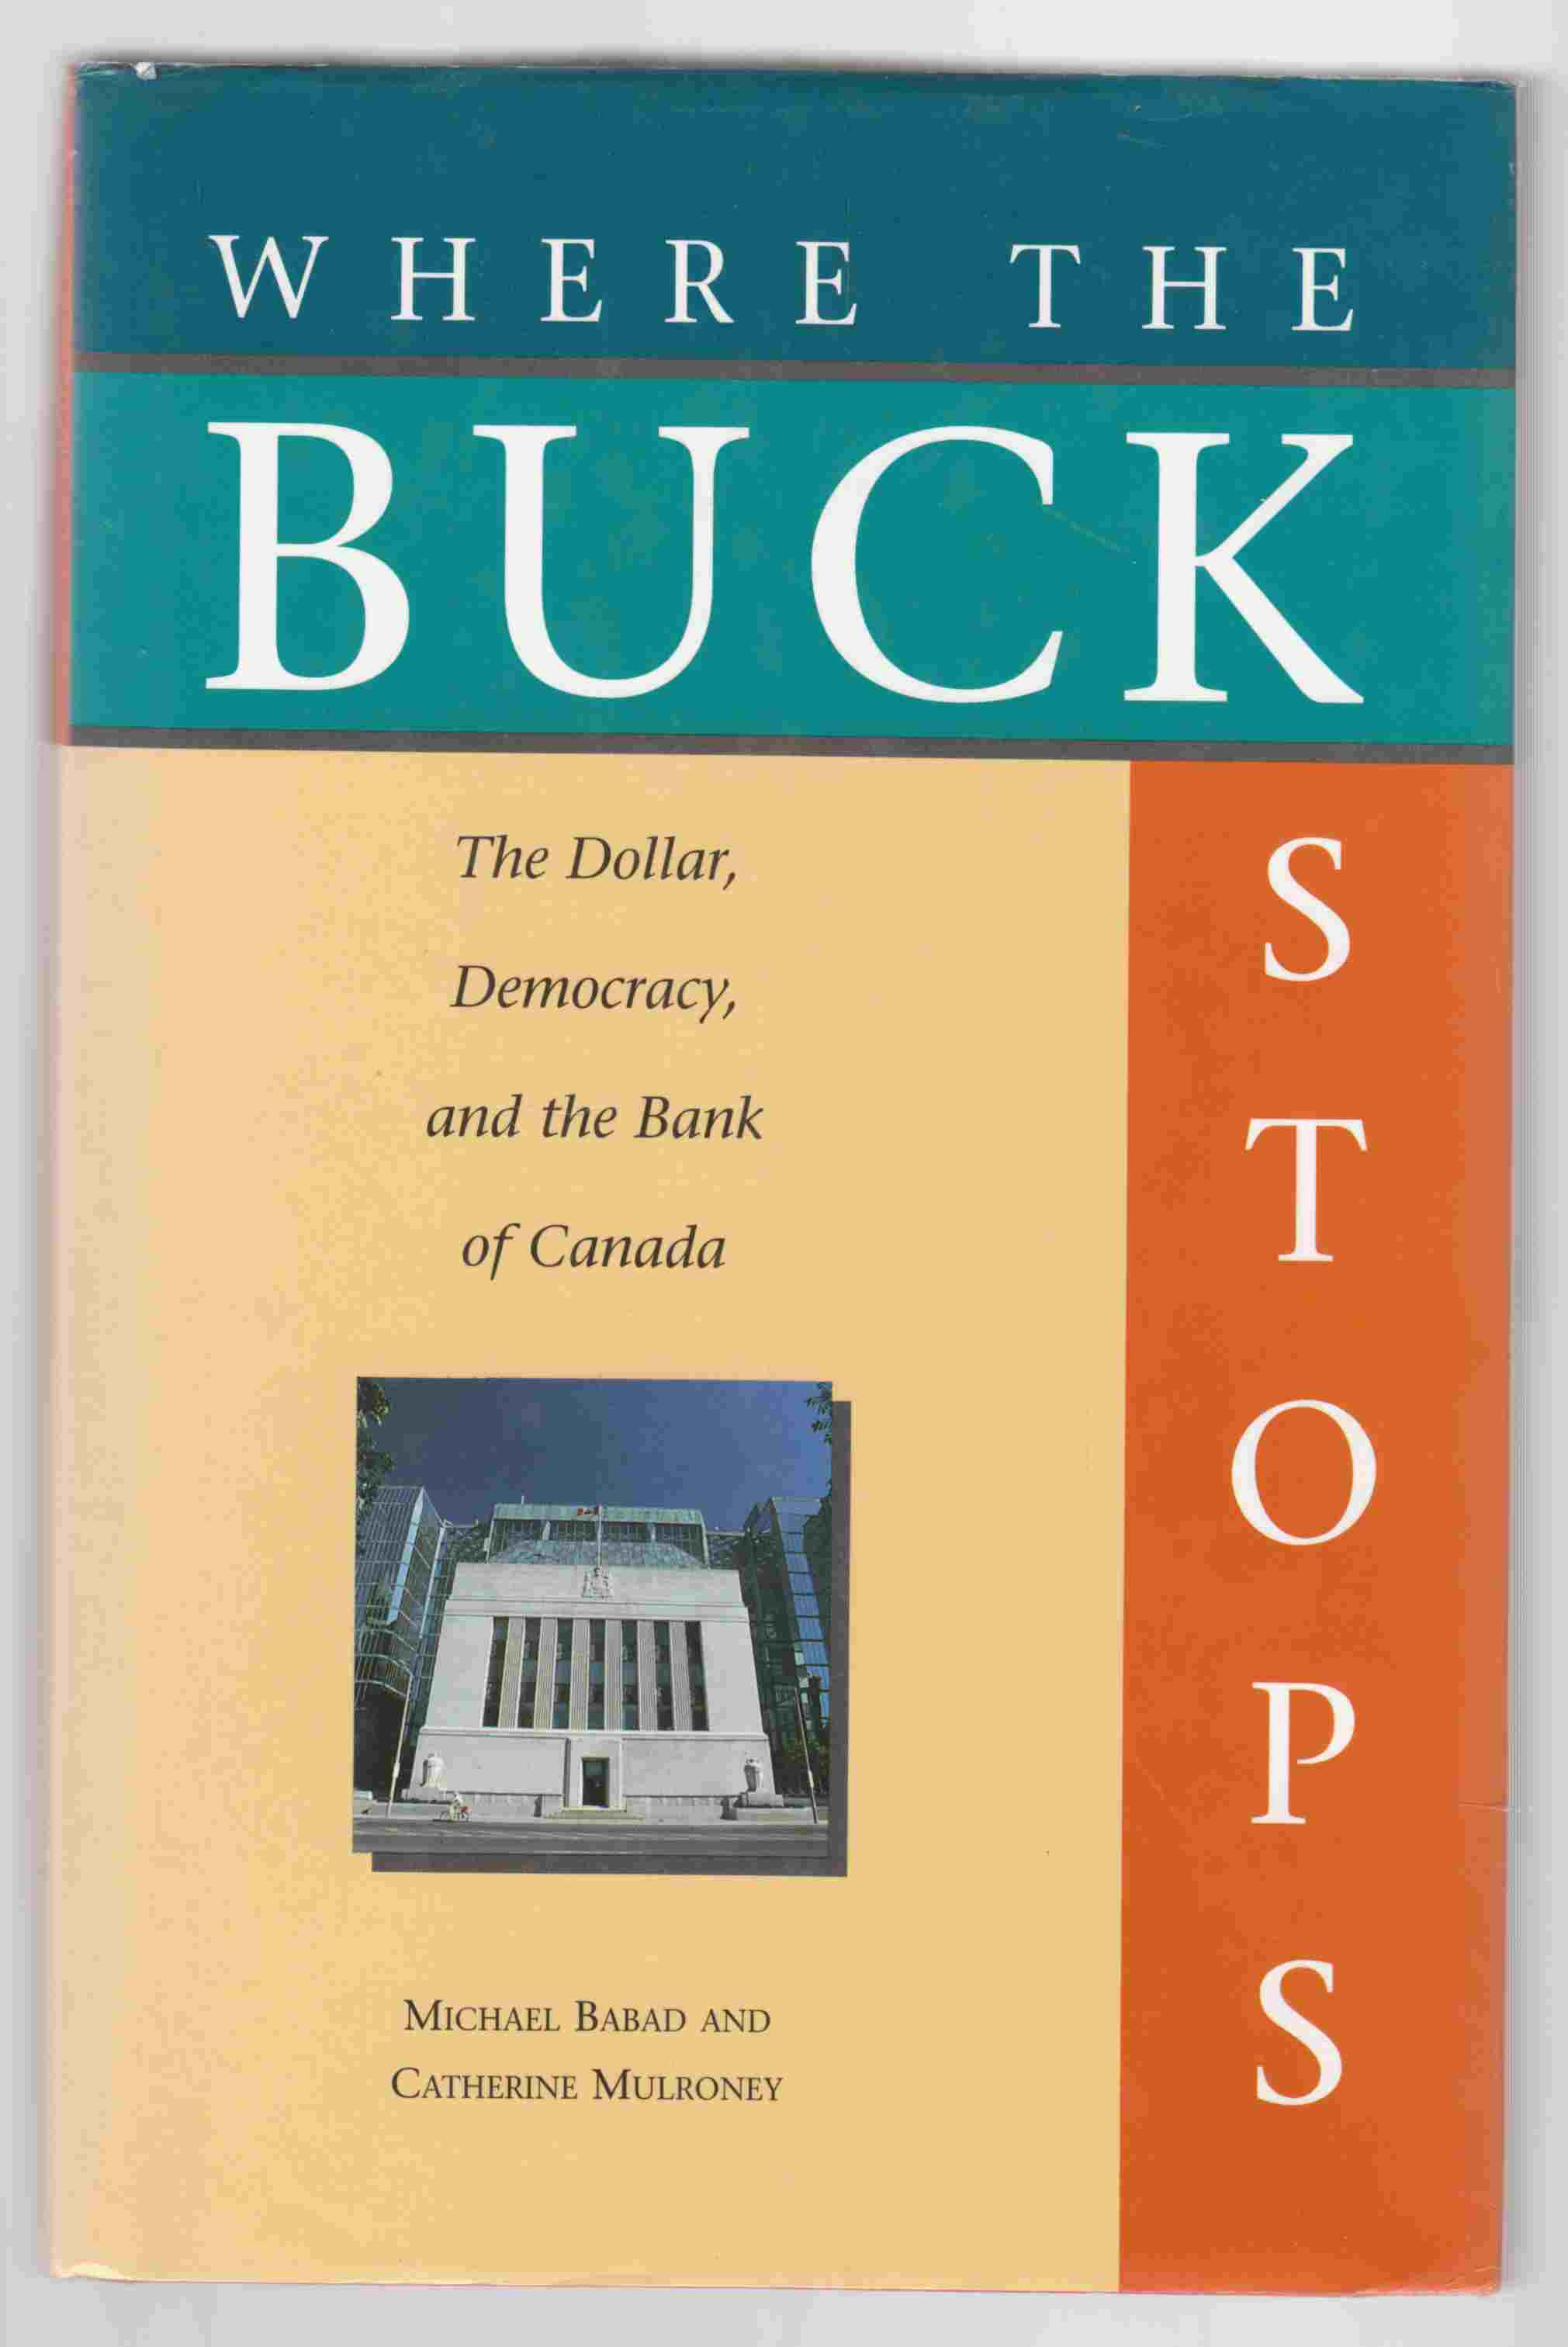 Image for Where the Buck Stops The Dollar, Democracy, and the Bank of Canada